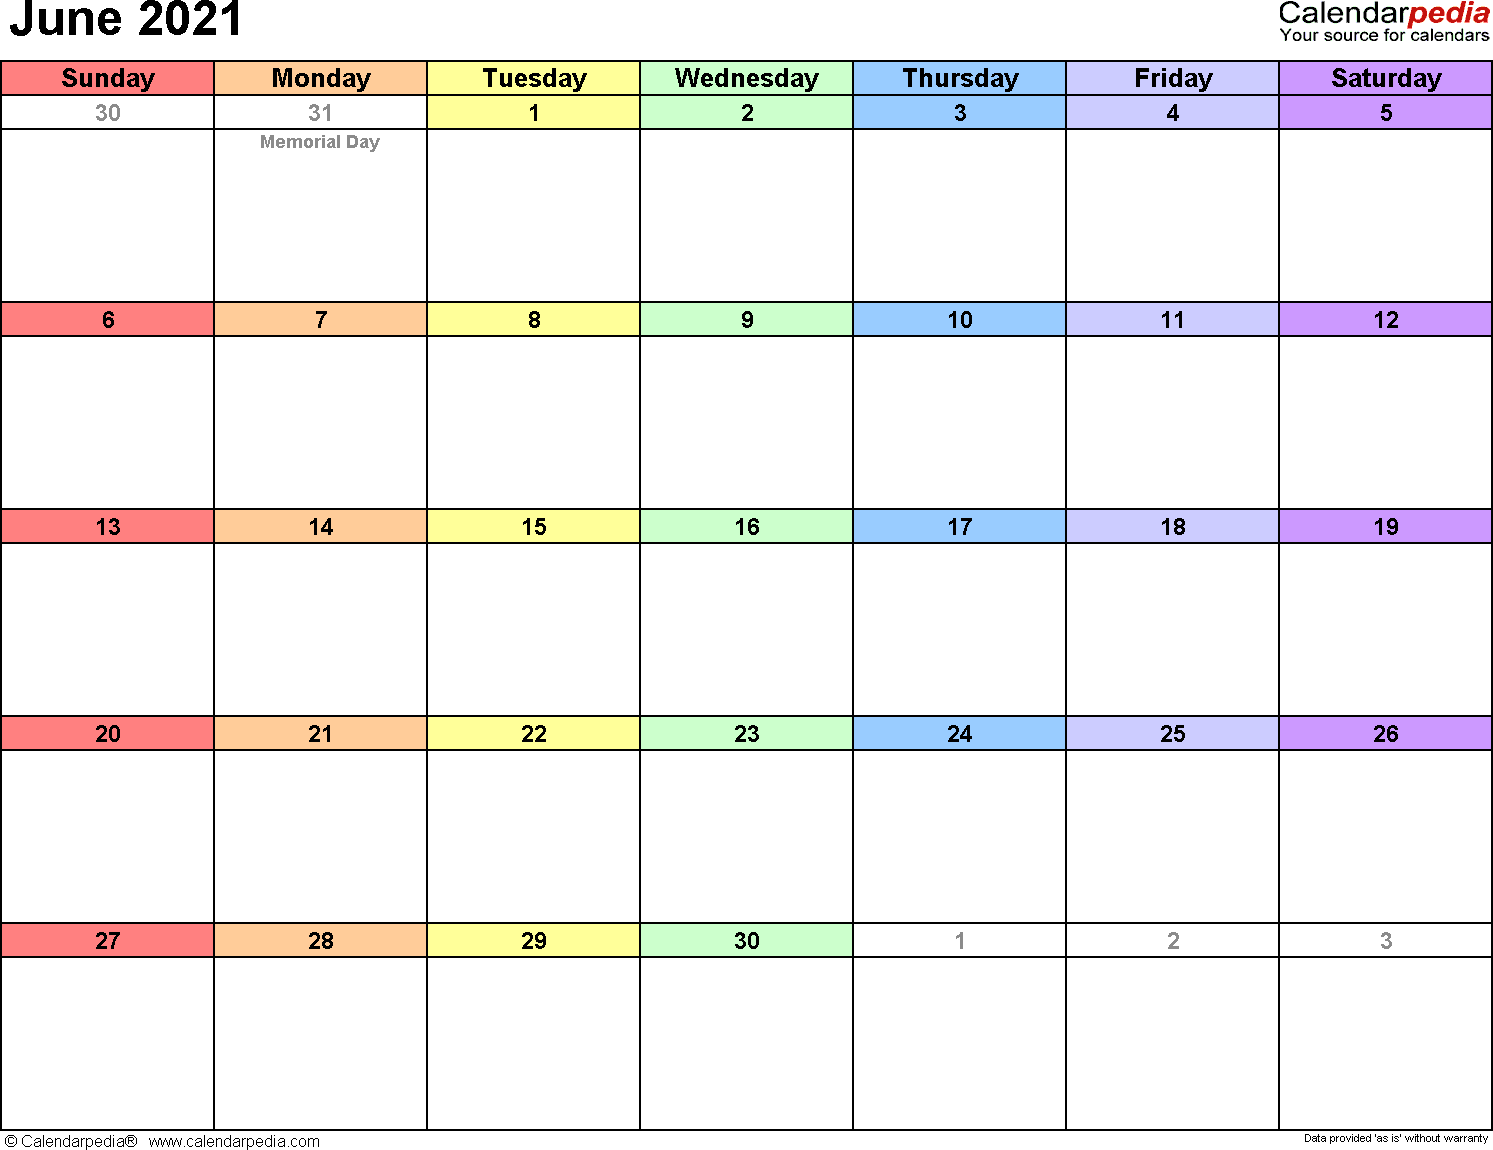 June 2021 - calendar templates for Word, Excel and PDF